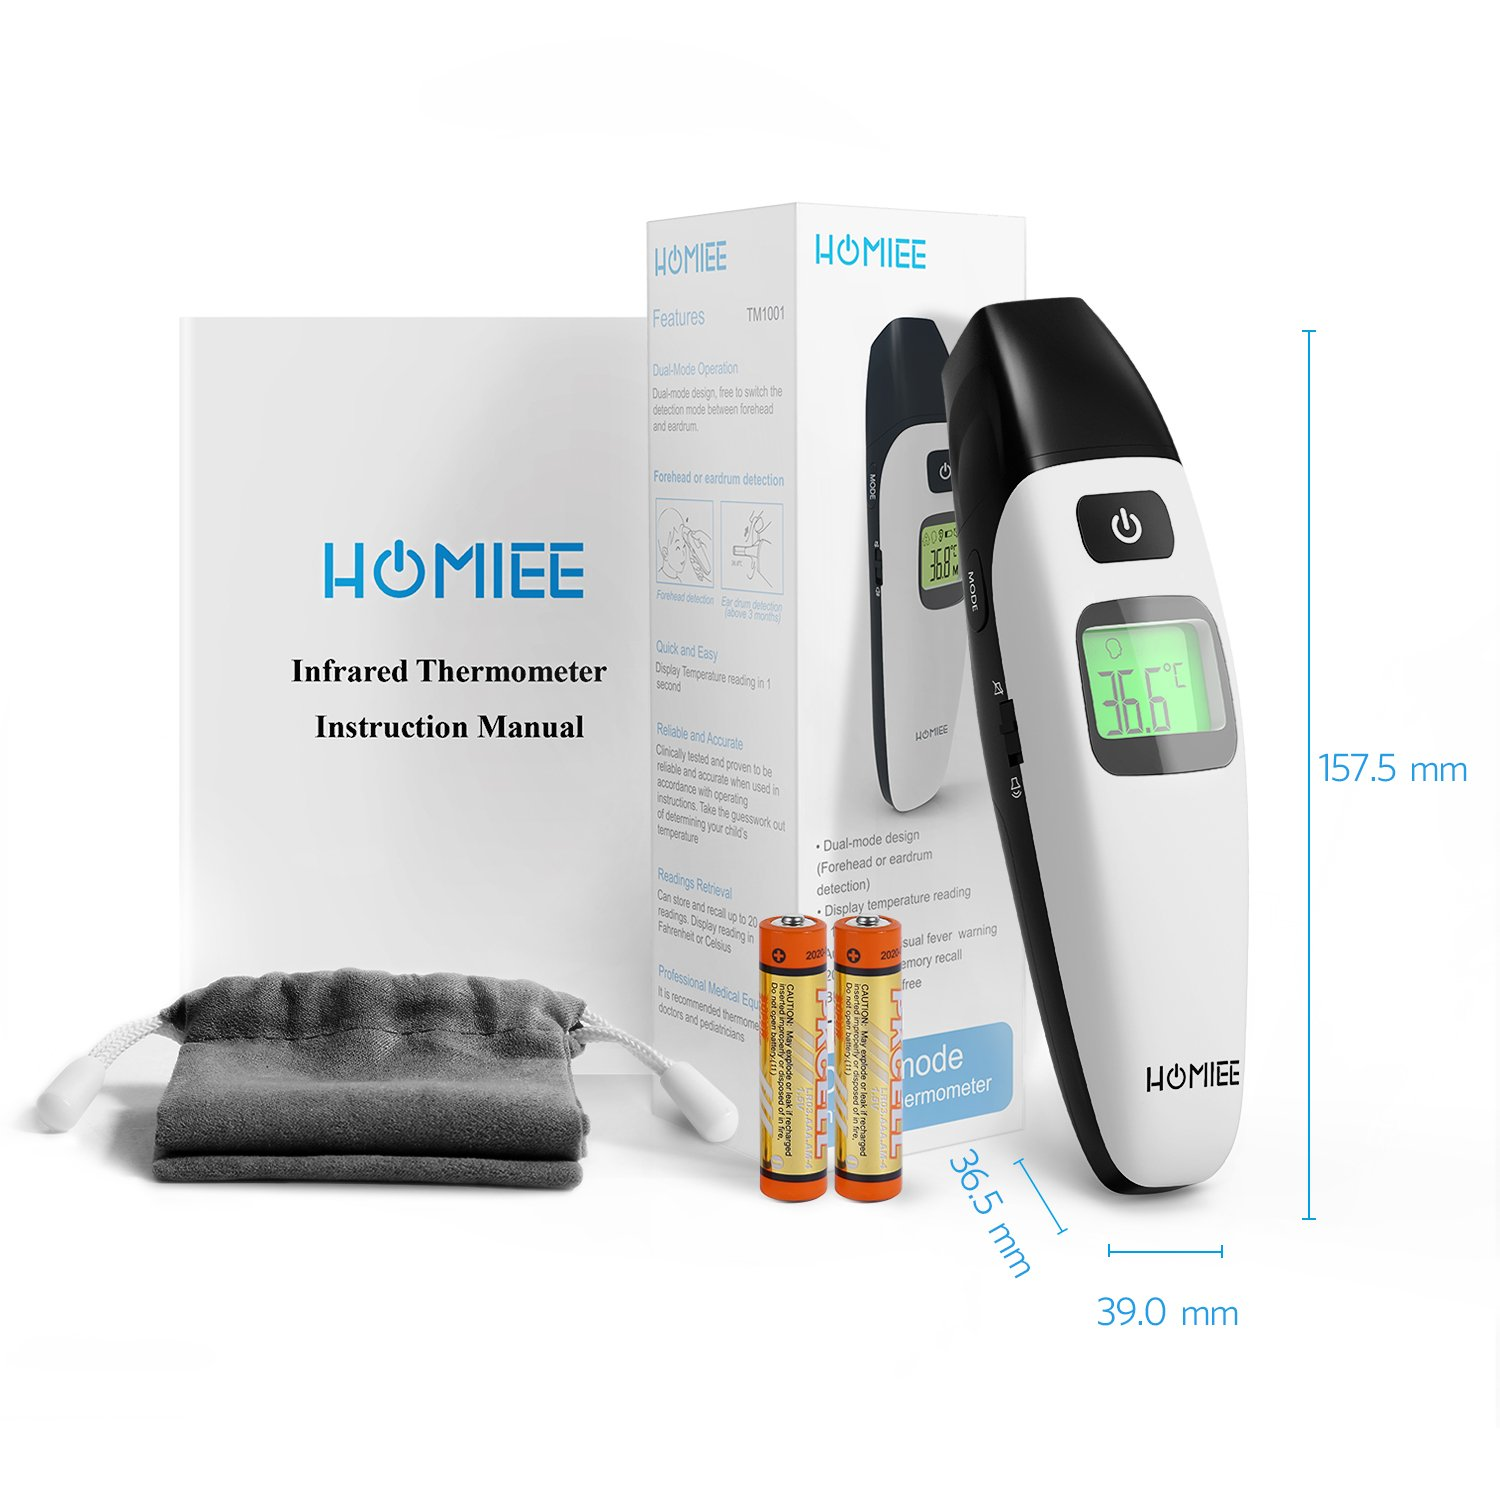 HOMIEE Black Thermometer, Ear Thermometer for Kids, Non Contact Infrared Digital Forehead Thermometer with Fever Alert and Three Color Backlit for Baby and Adults, FDA and CE Certifications Approved by HOMIEE (Image #7)